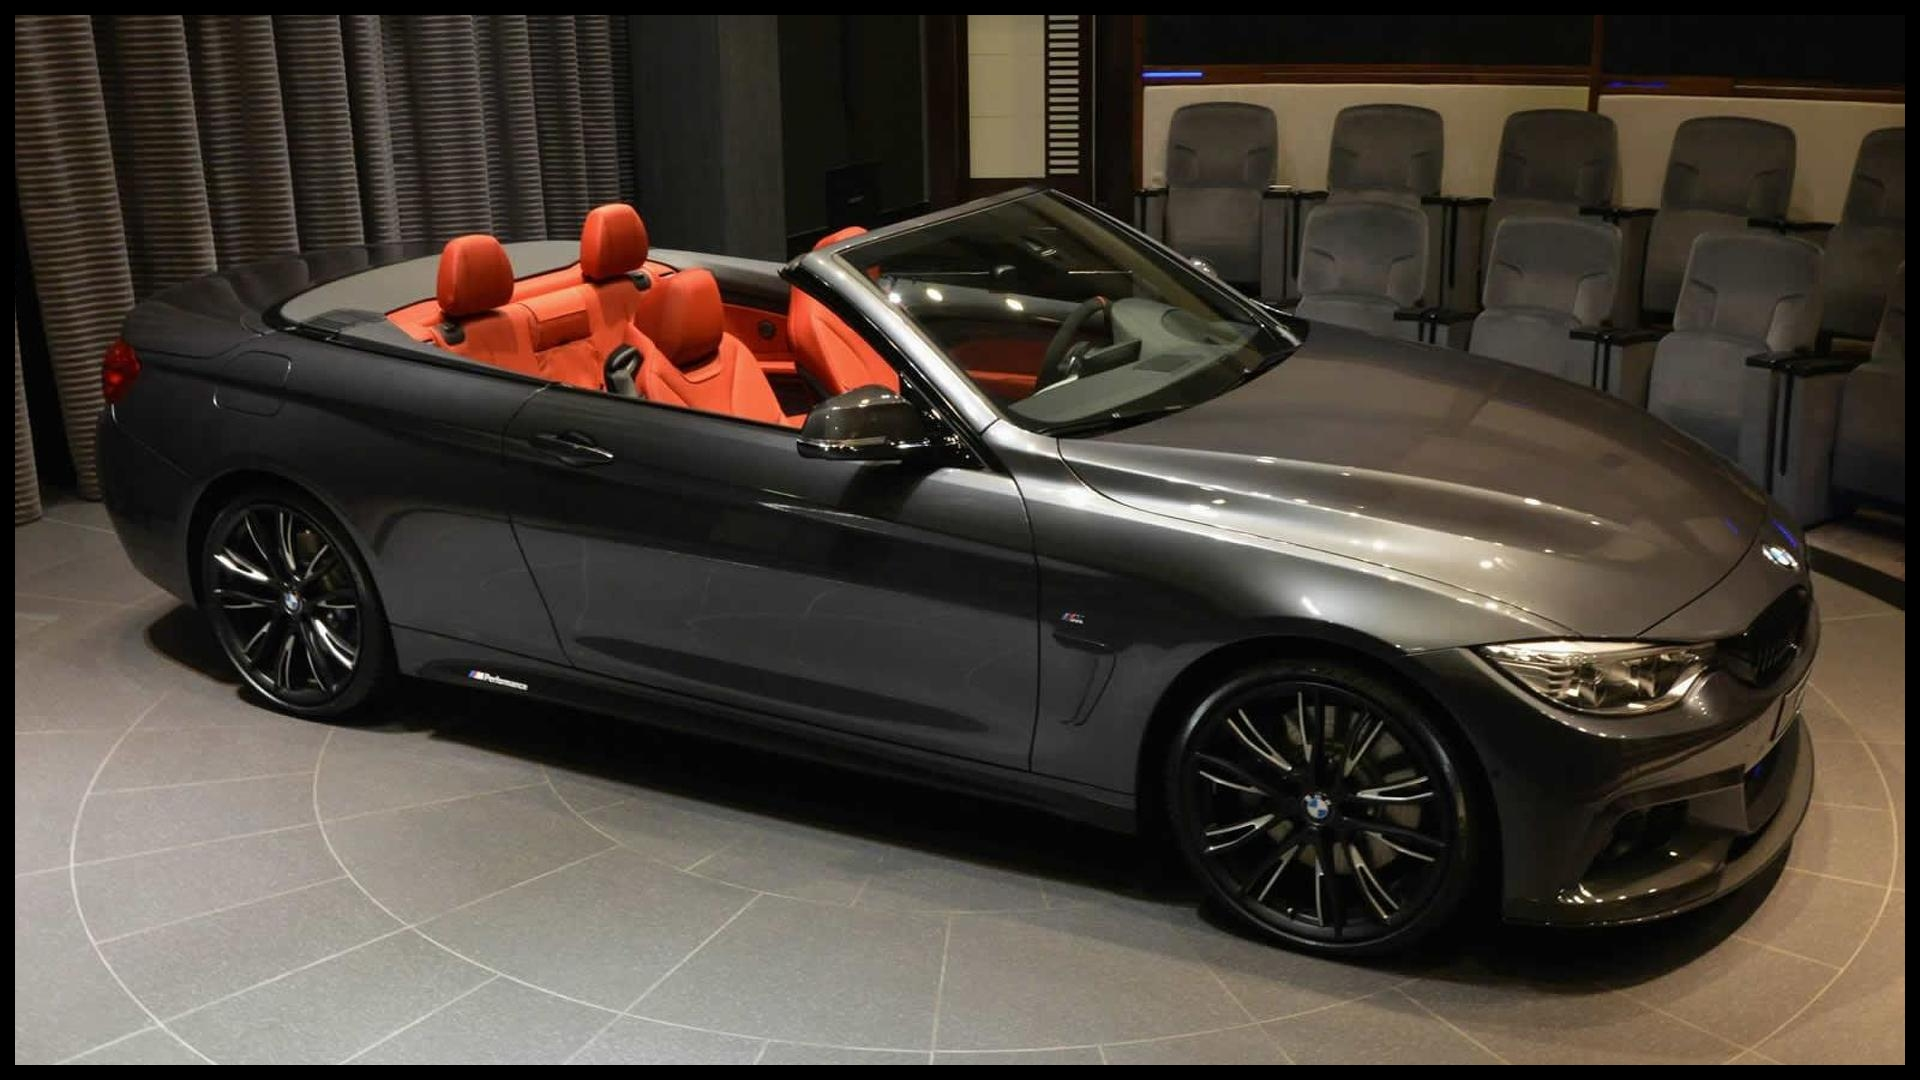 2017 4 Series Convertible Luxury 4 Series Convertible Bmw